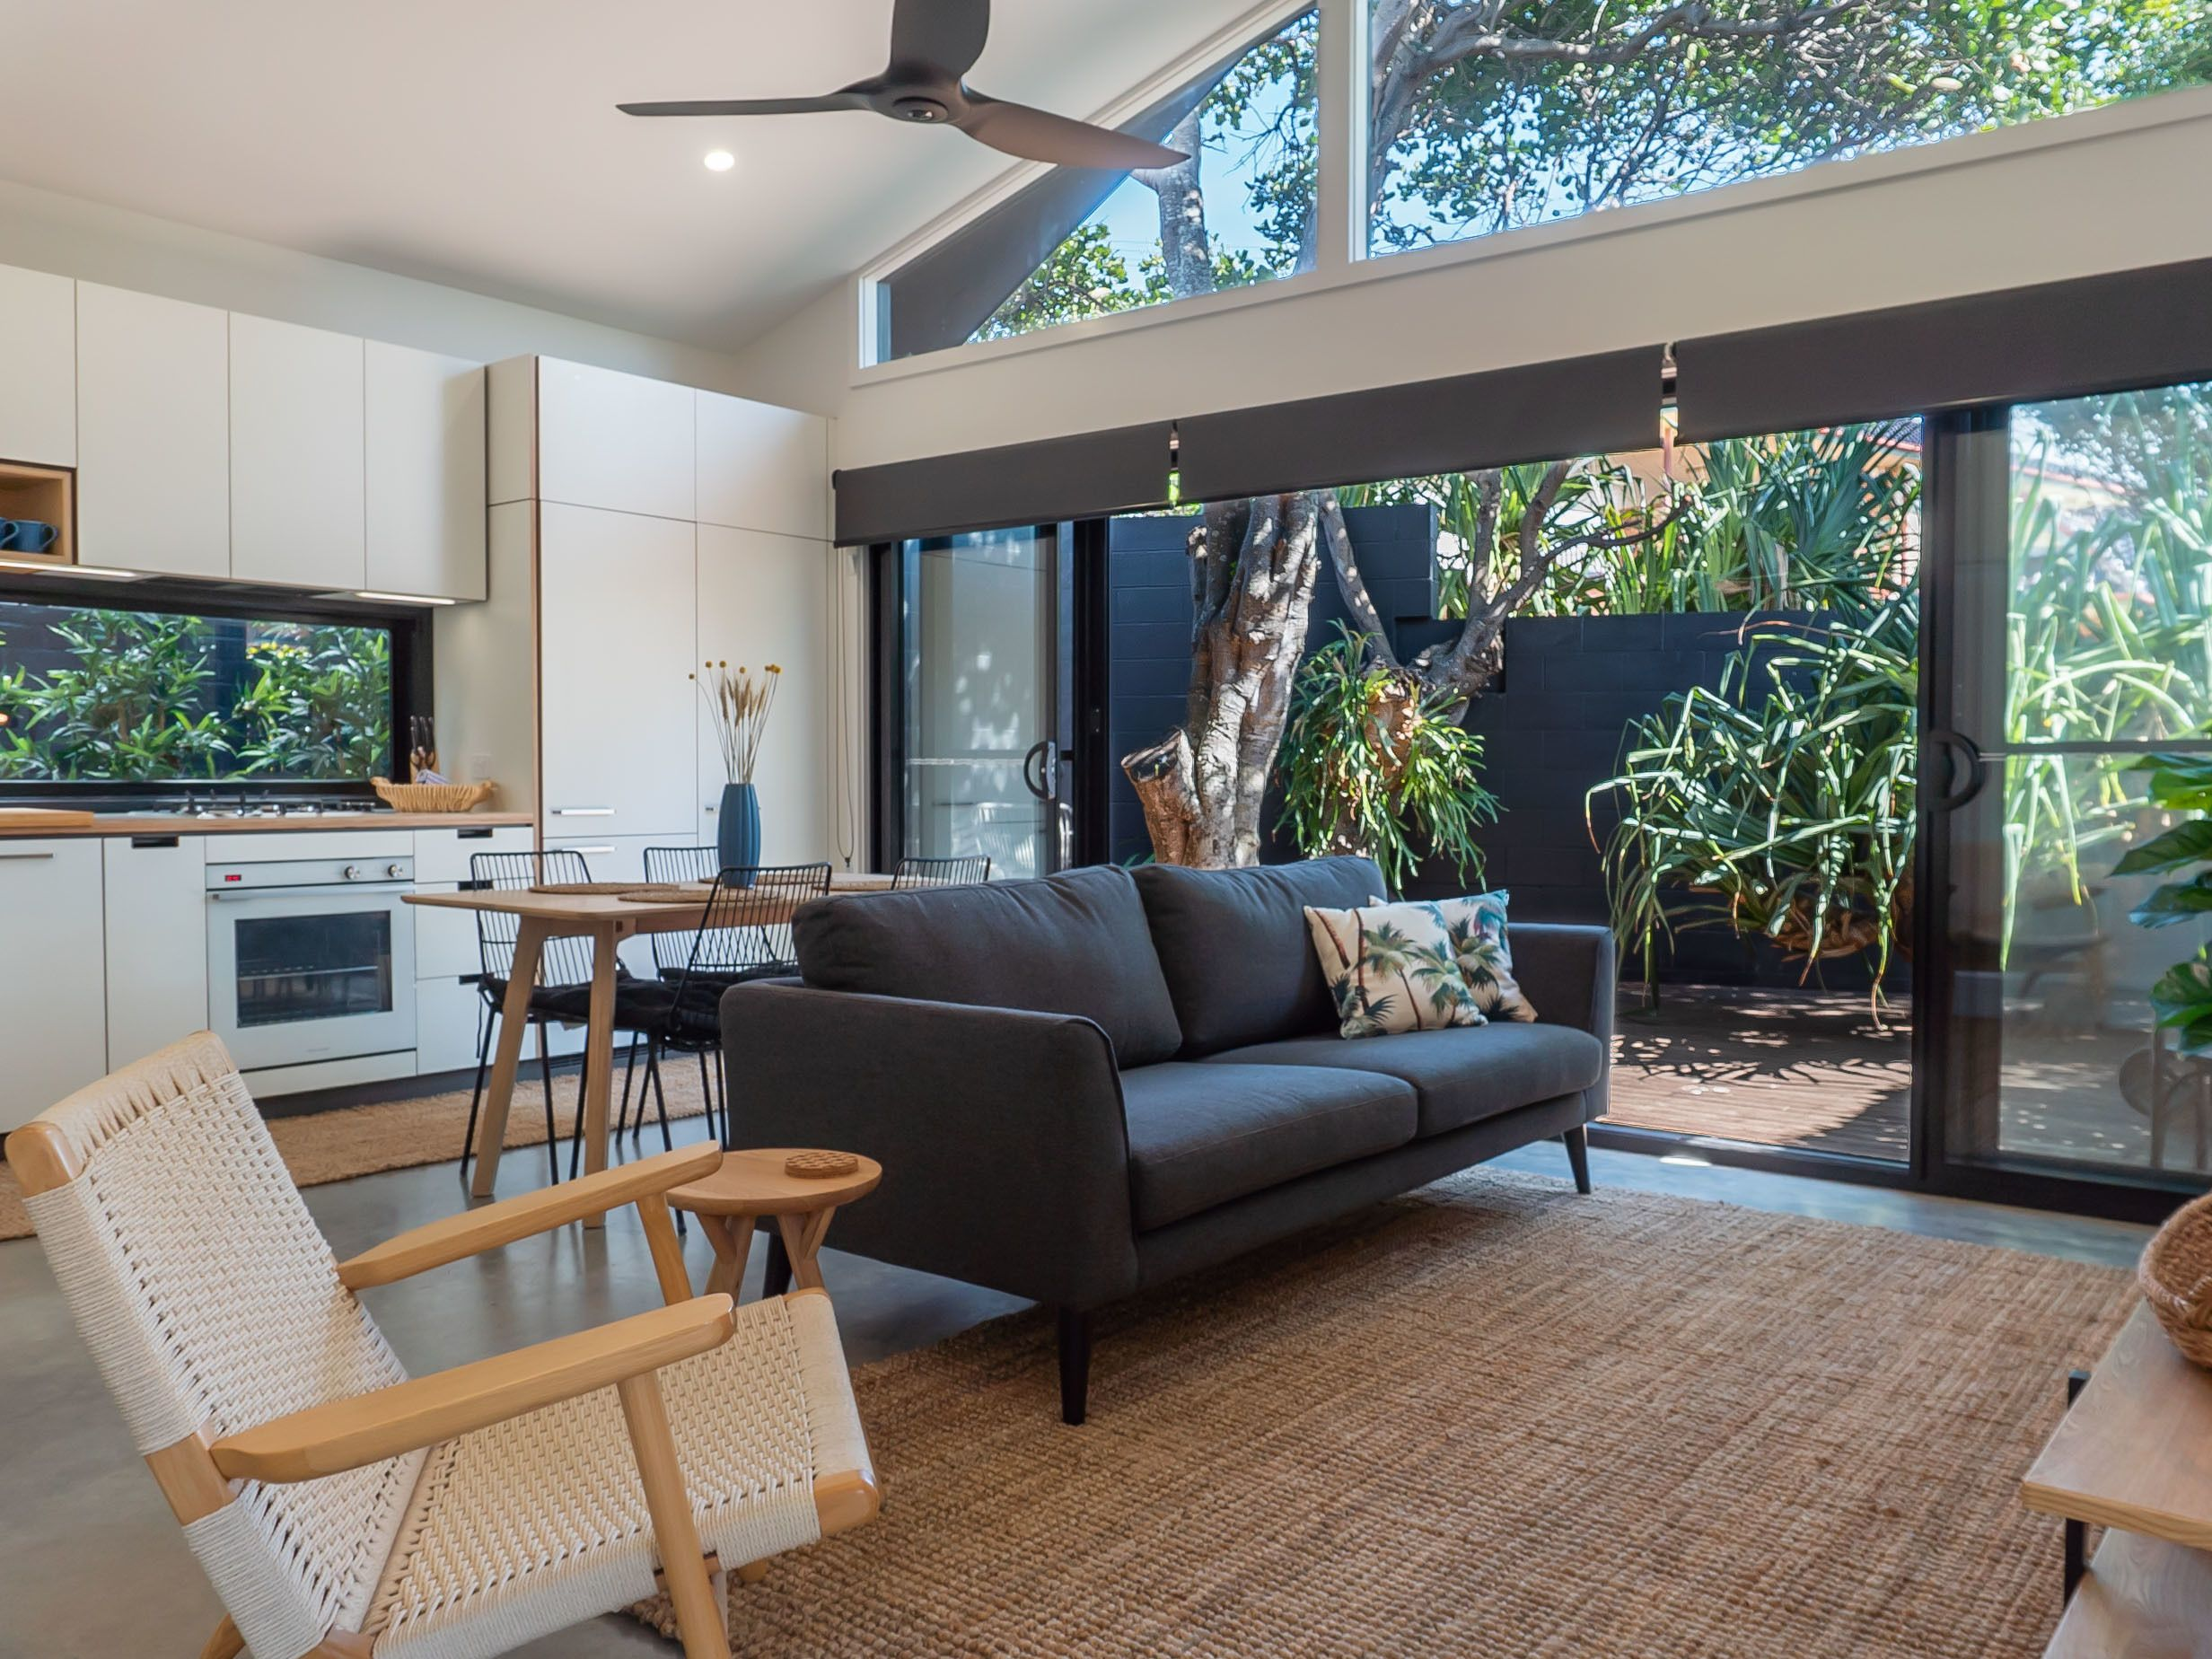 Beach house in Sawtell NSW Australia across the road from